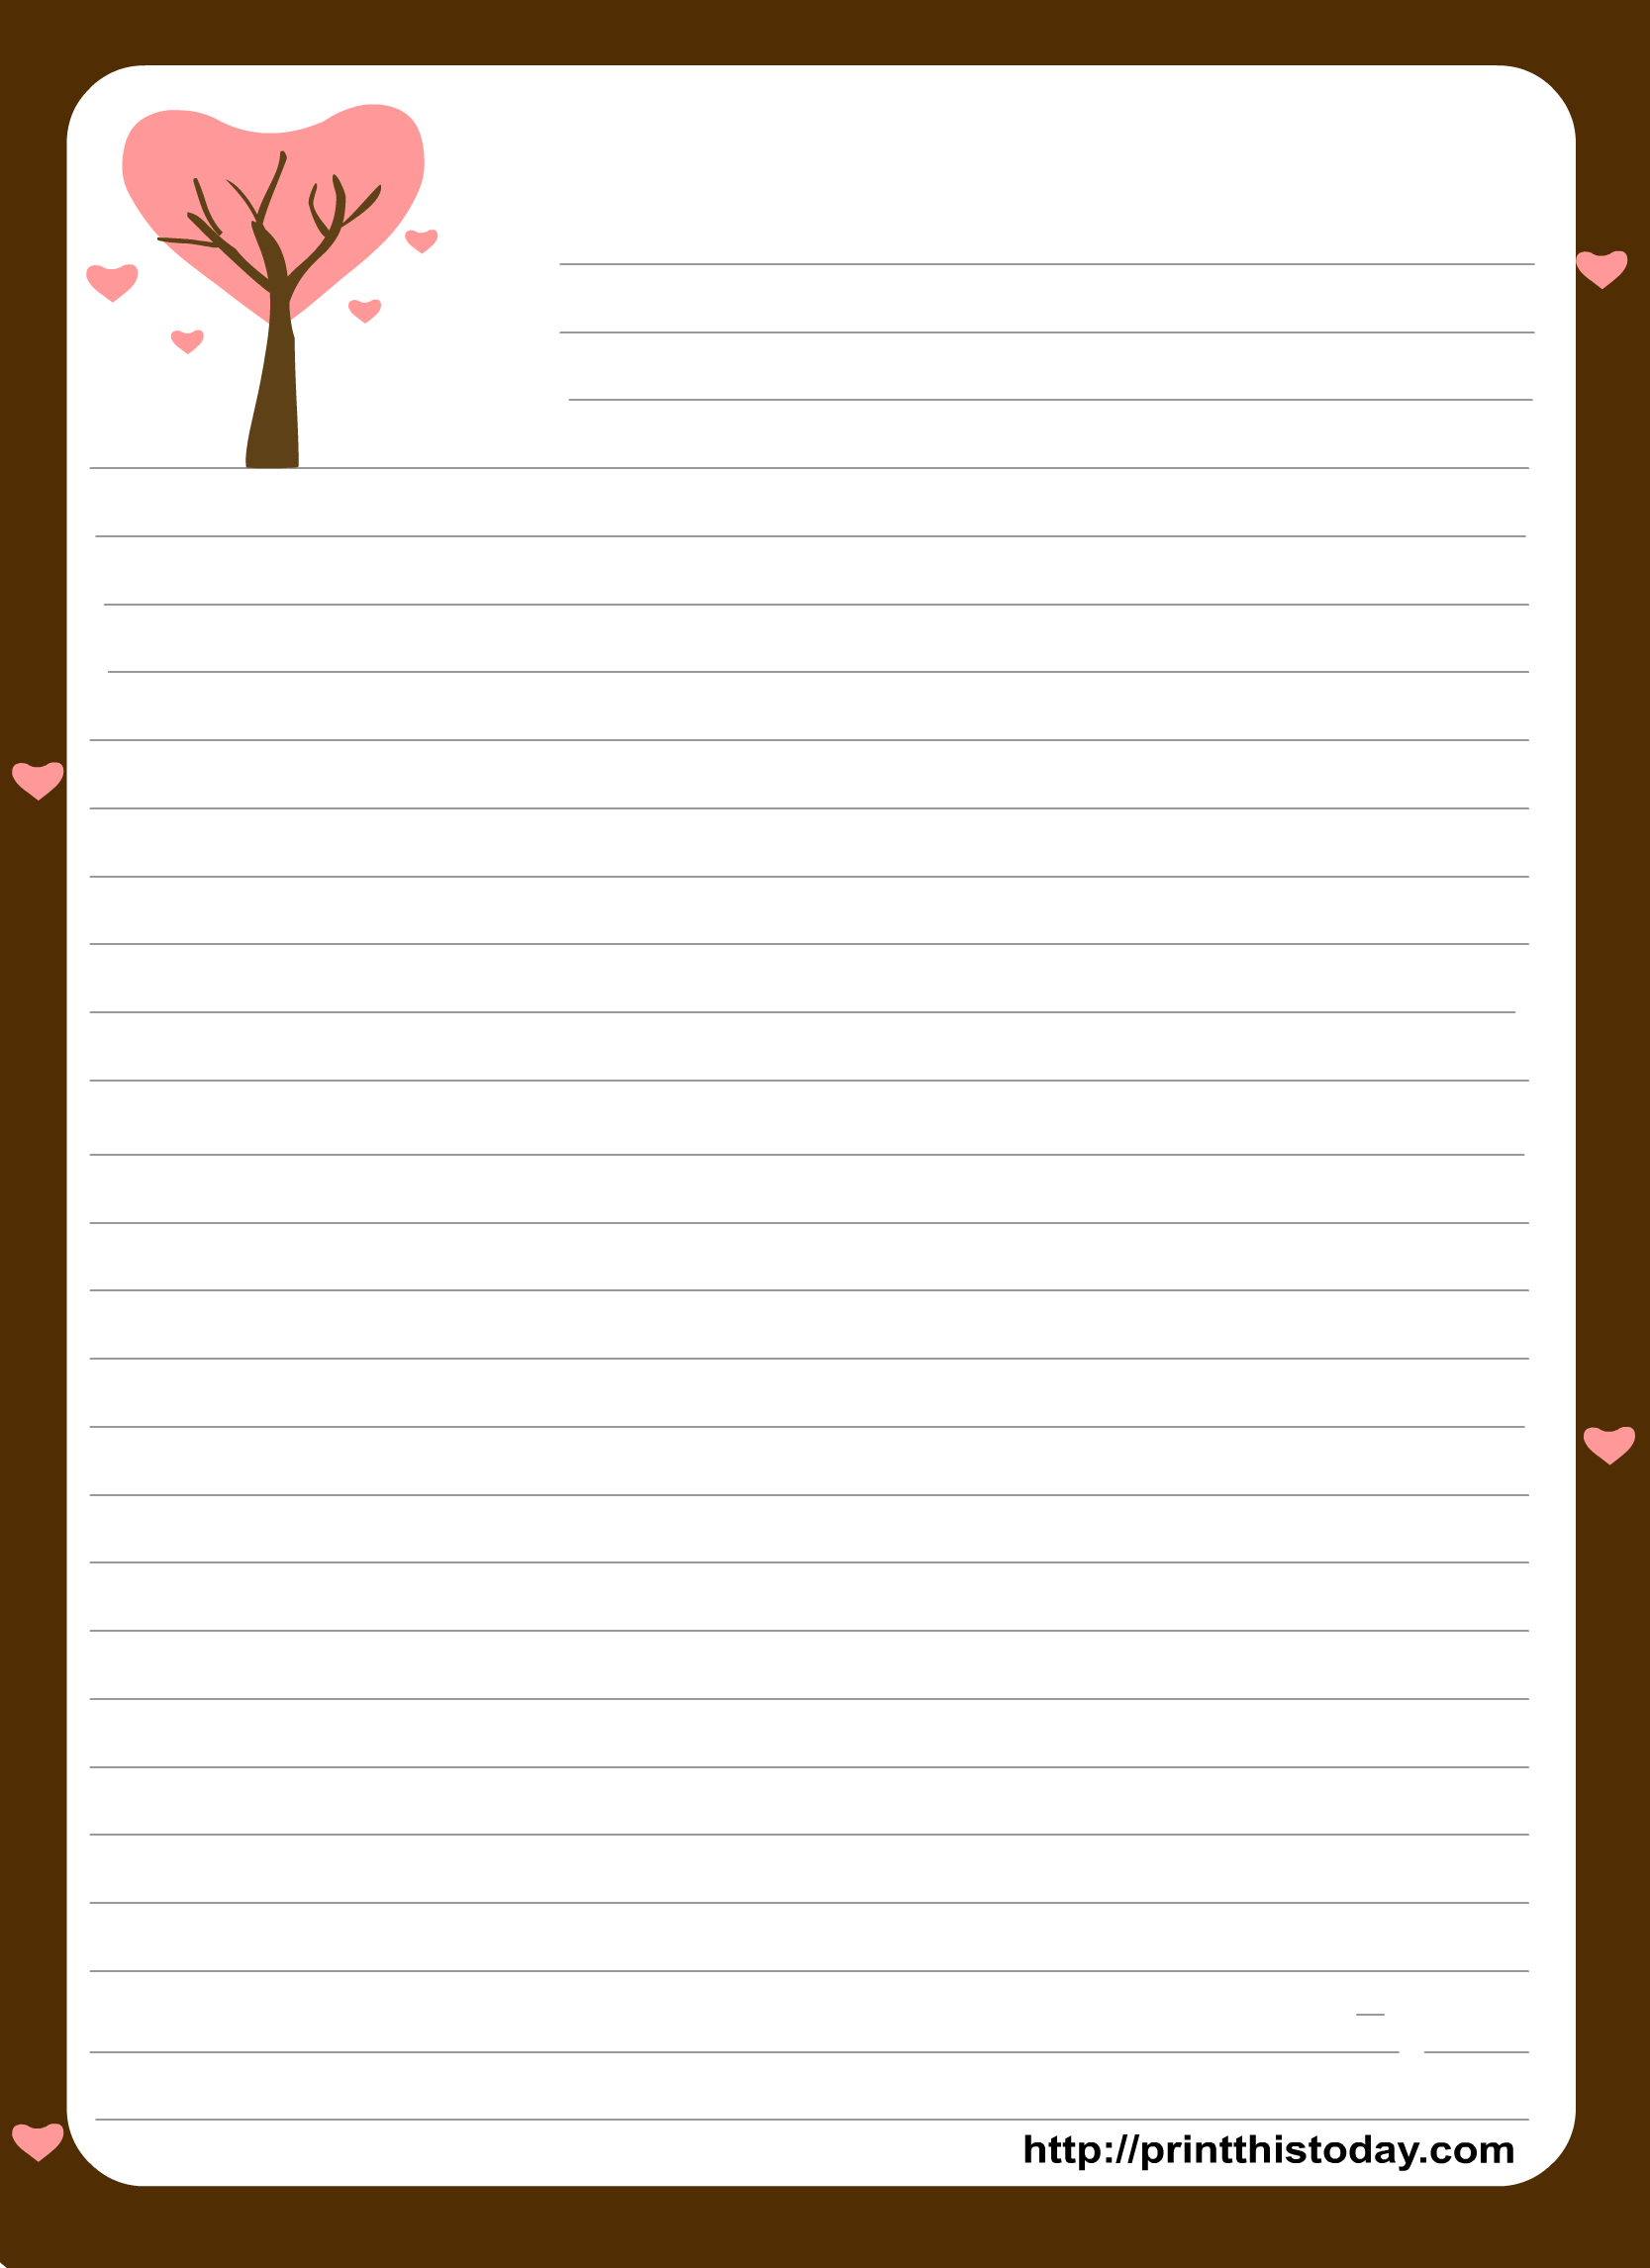 Free Printable Stationery Paper   Free Printable Stationary With - Free Printable Stationery Writing Paper